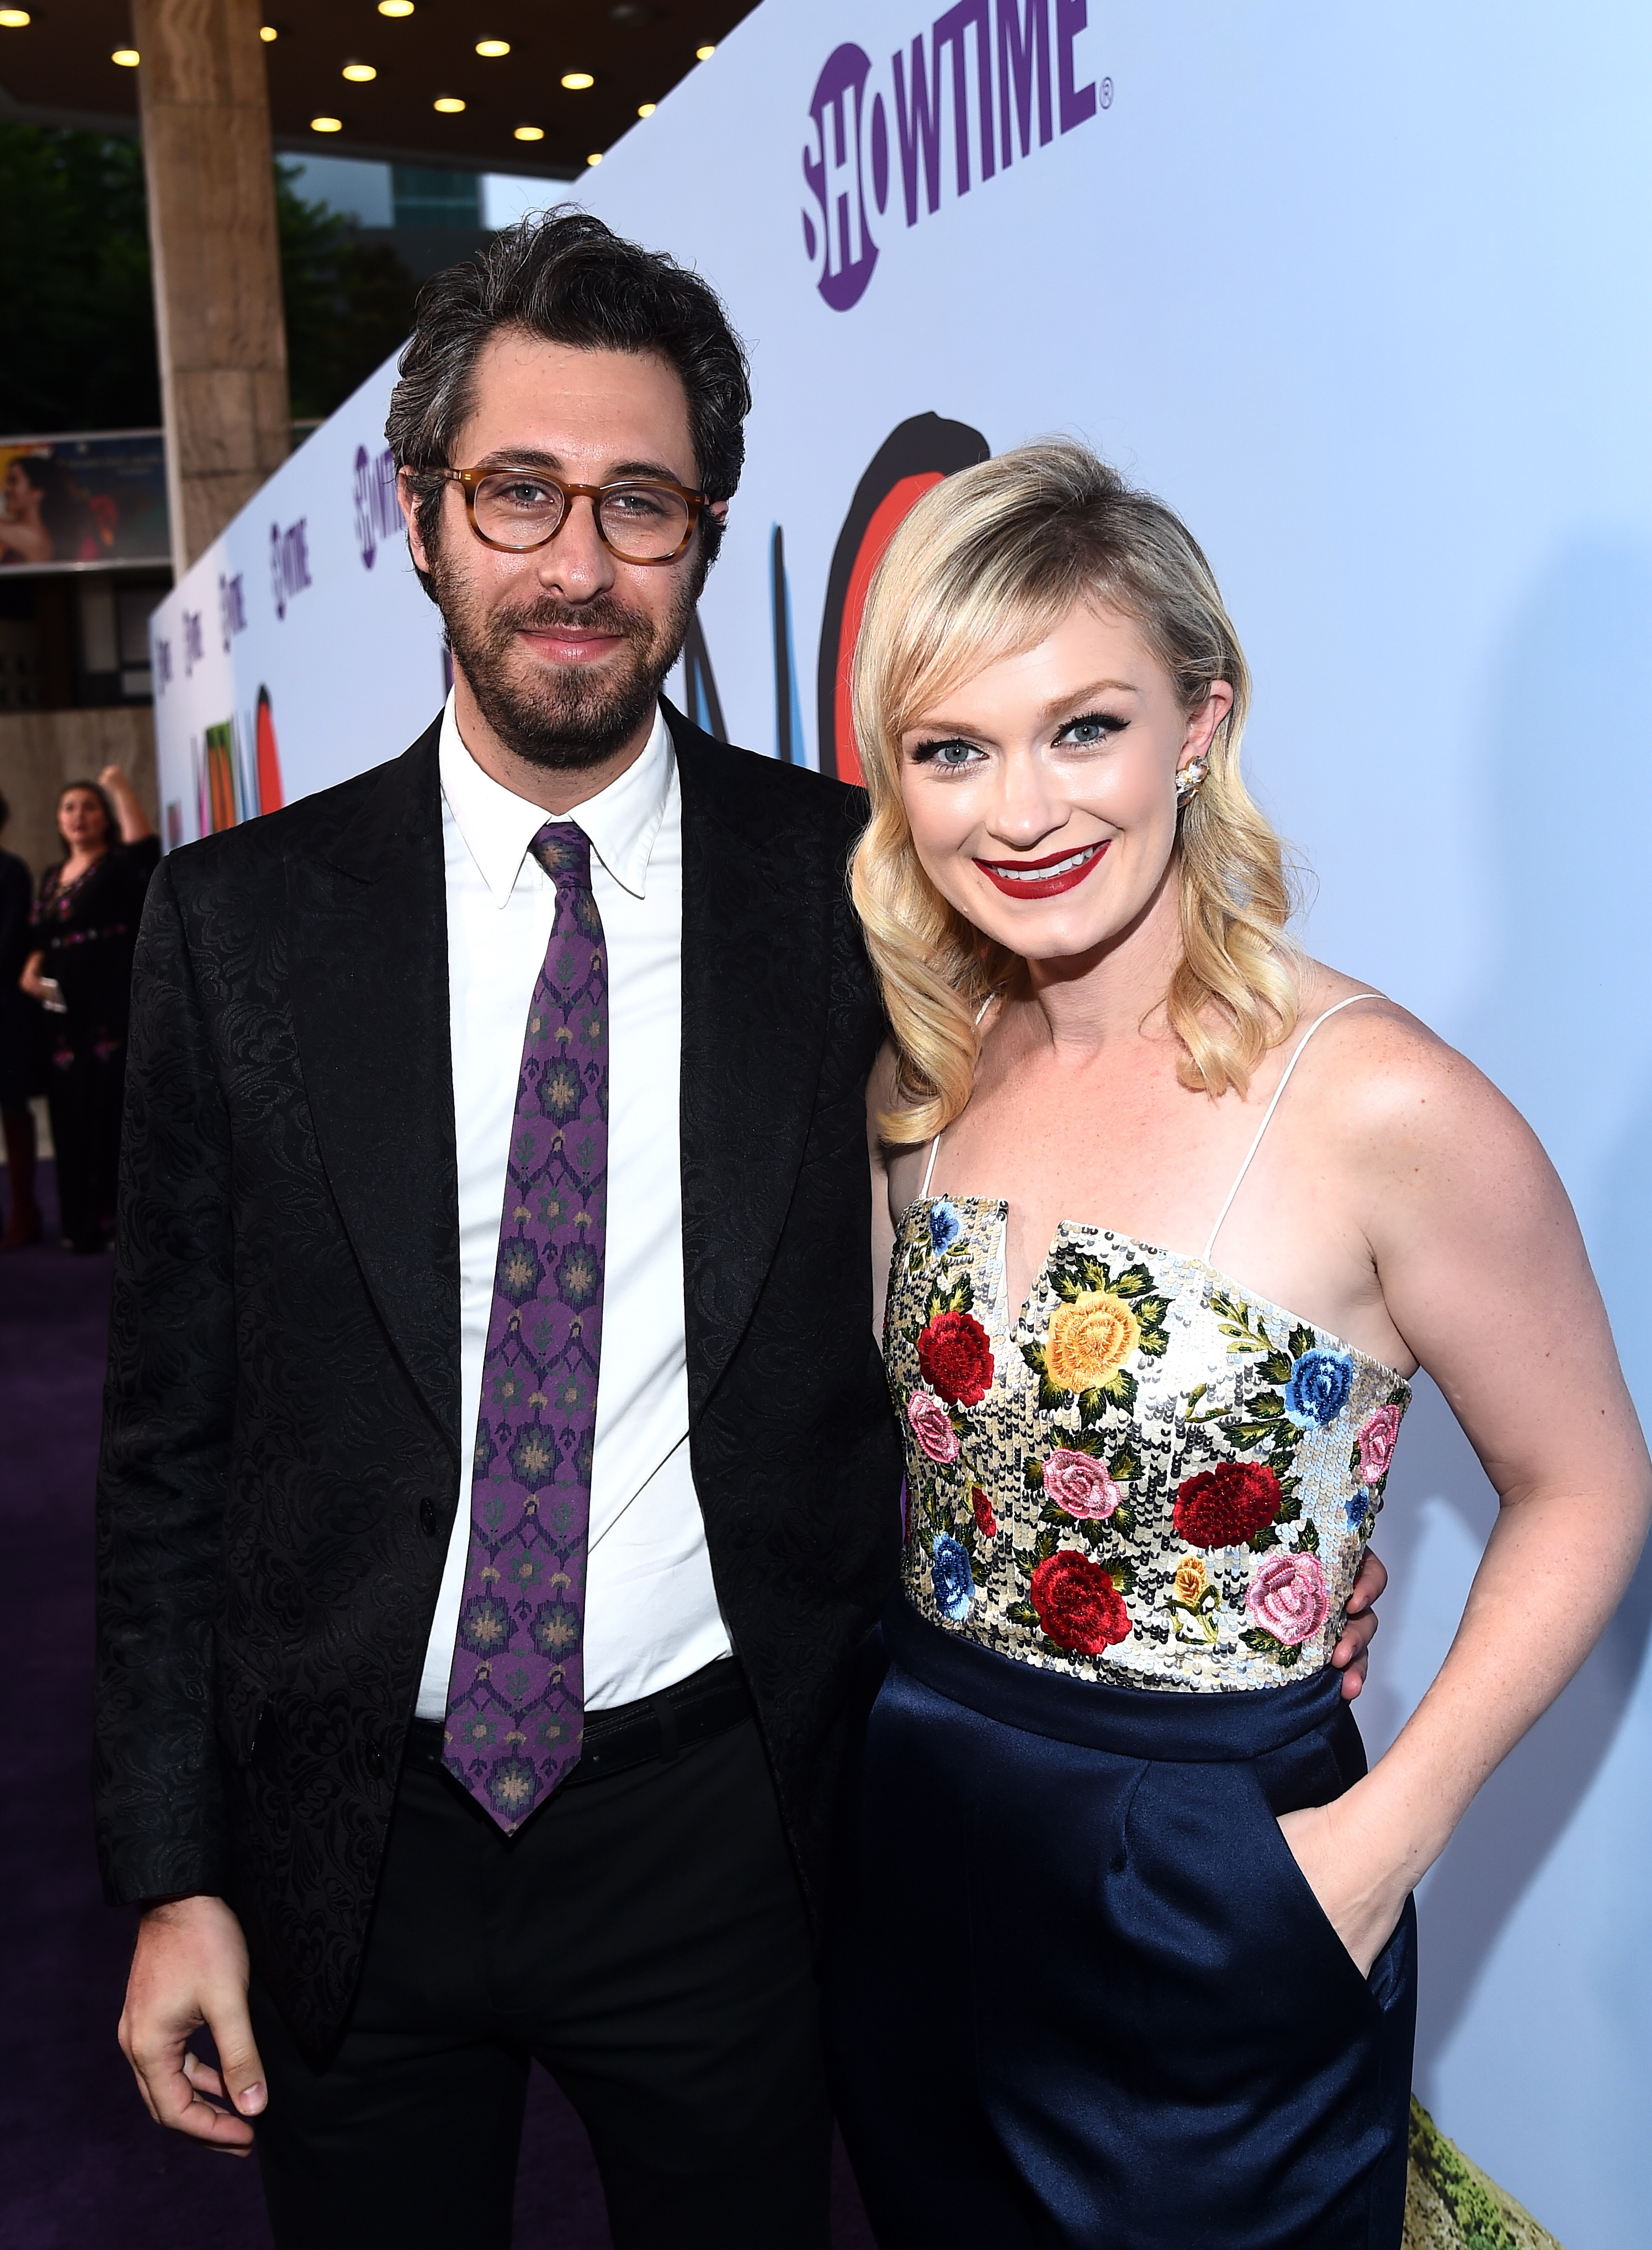 Dave Holstein and Katie Locke O'Brien at the premiere of Showtime's KIDDING